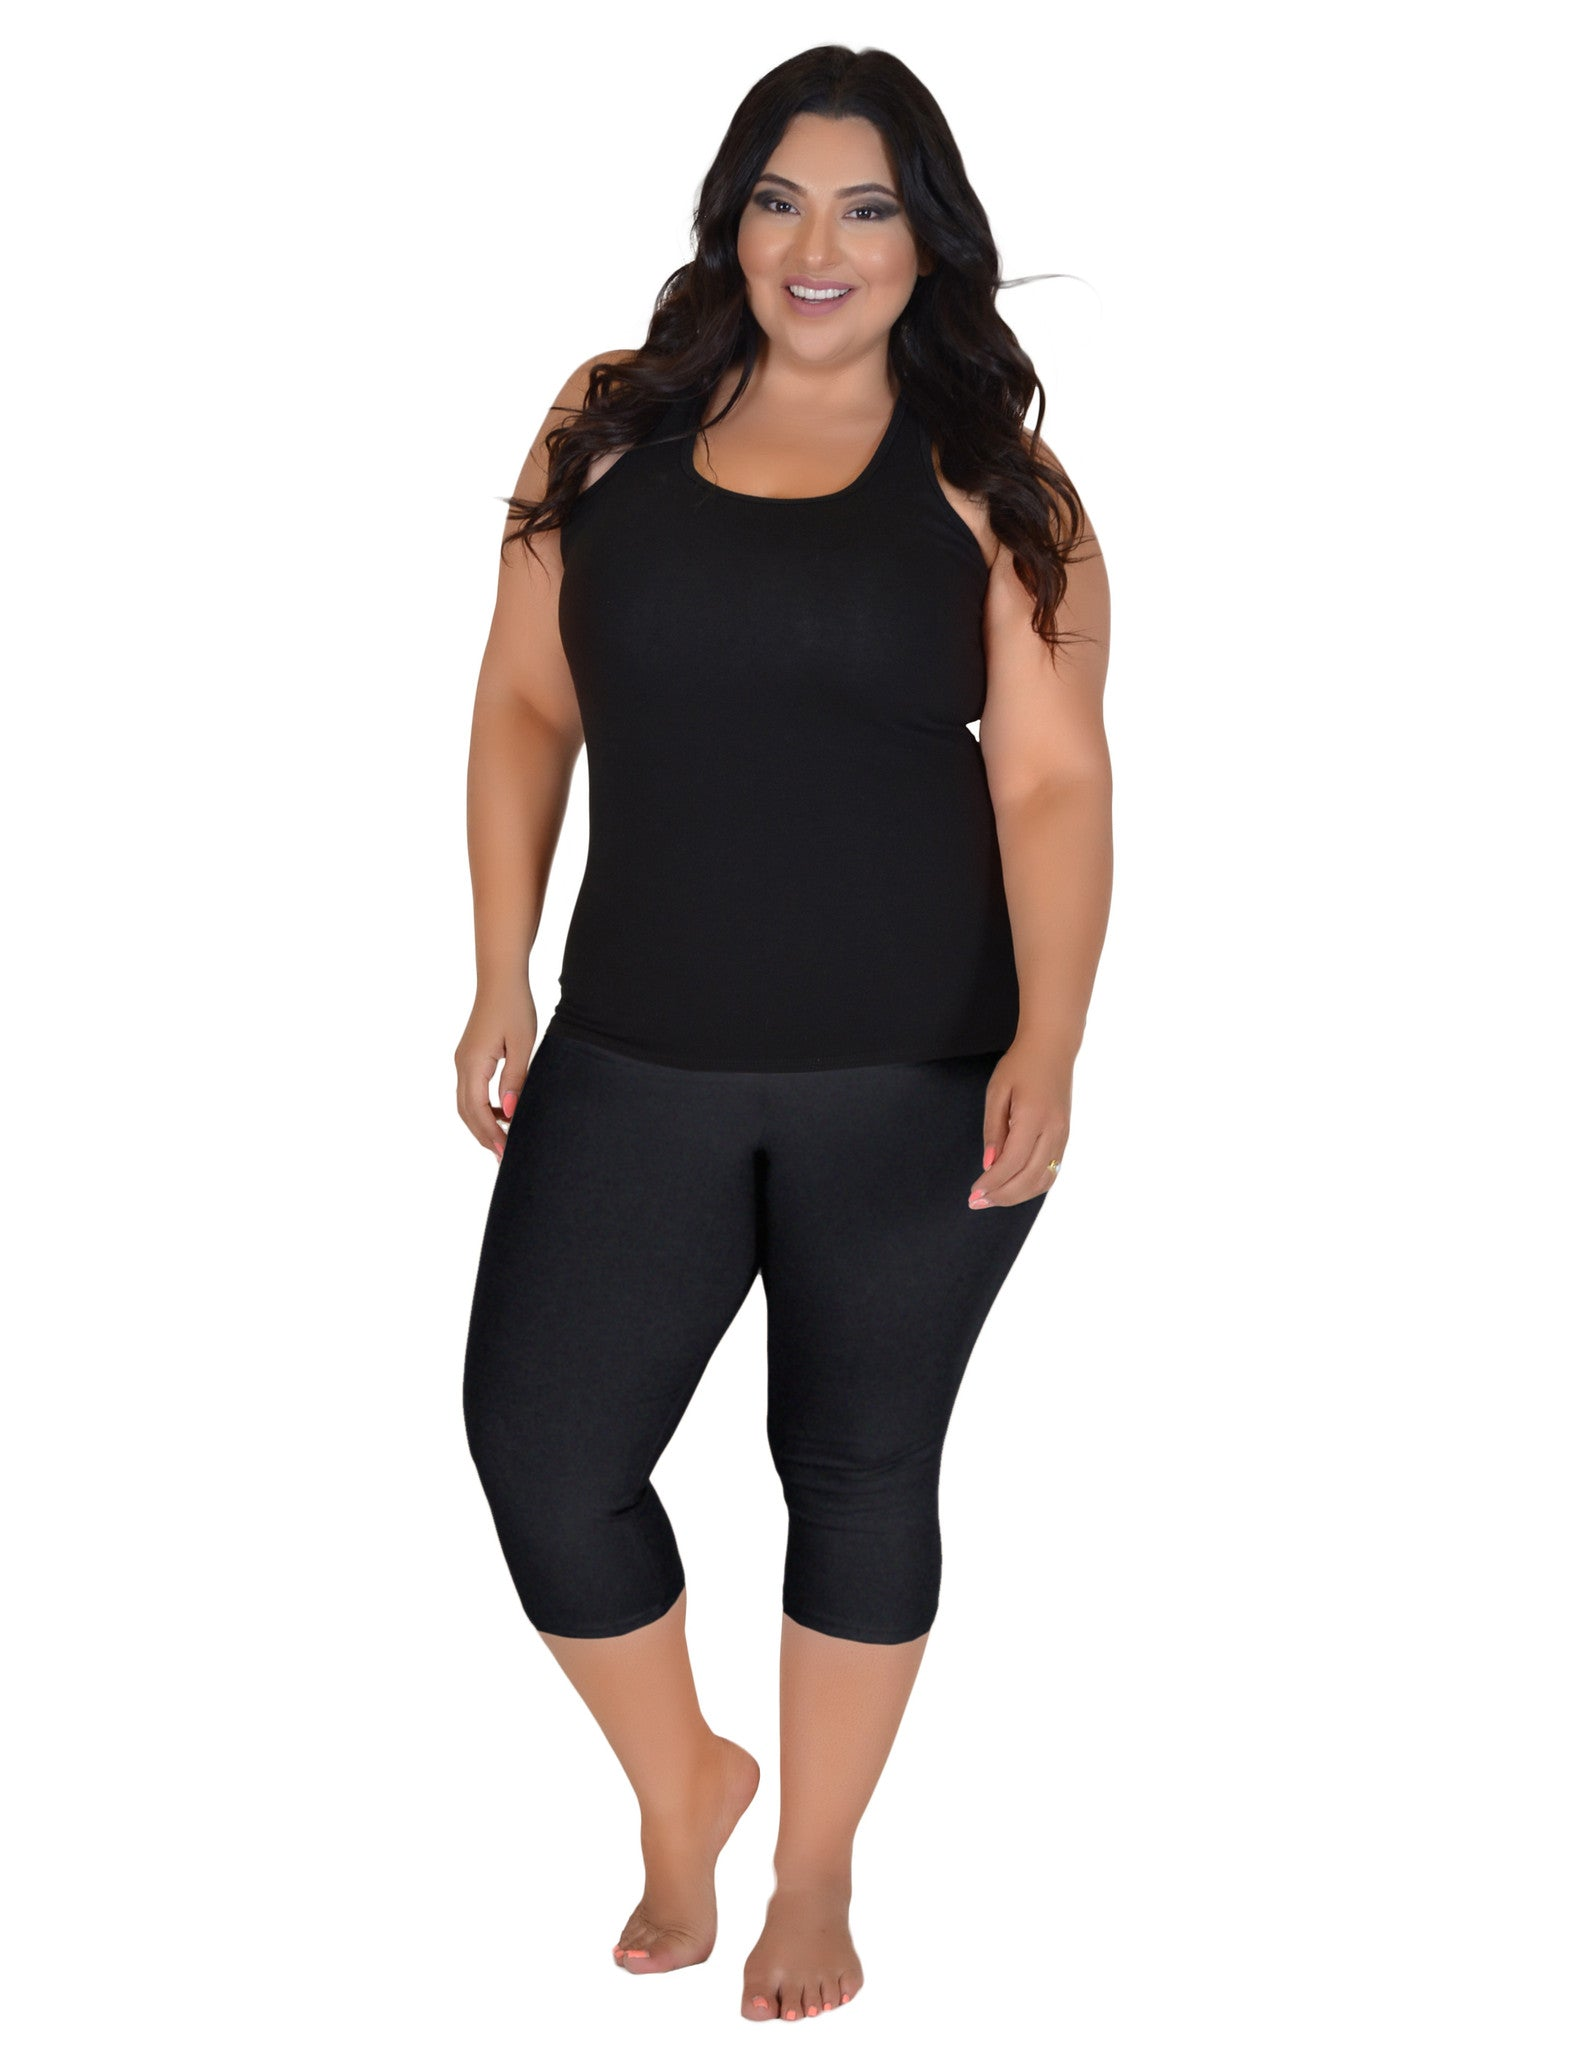 Plus Size Circuit Knee Length Leggings